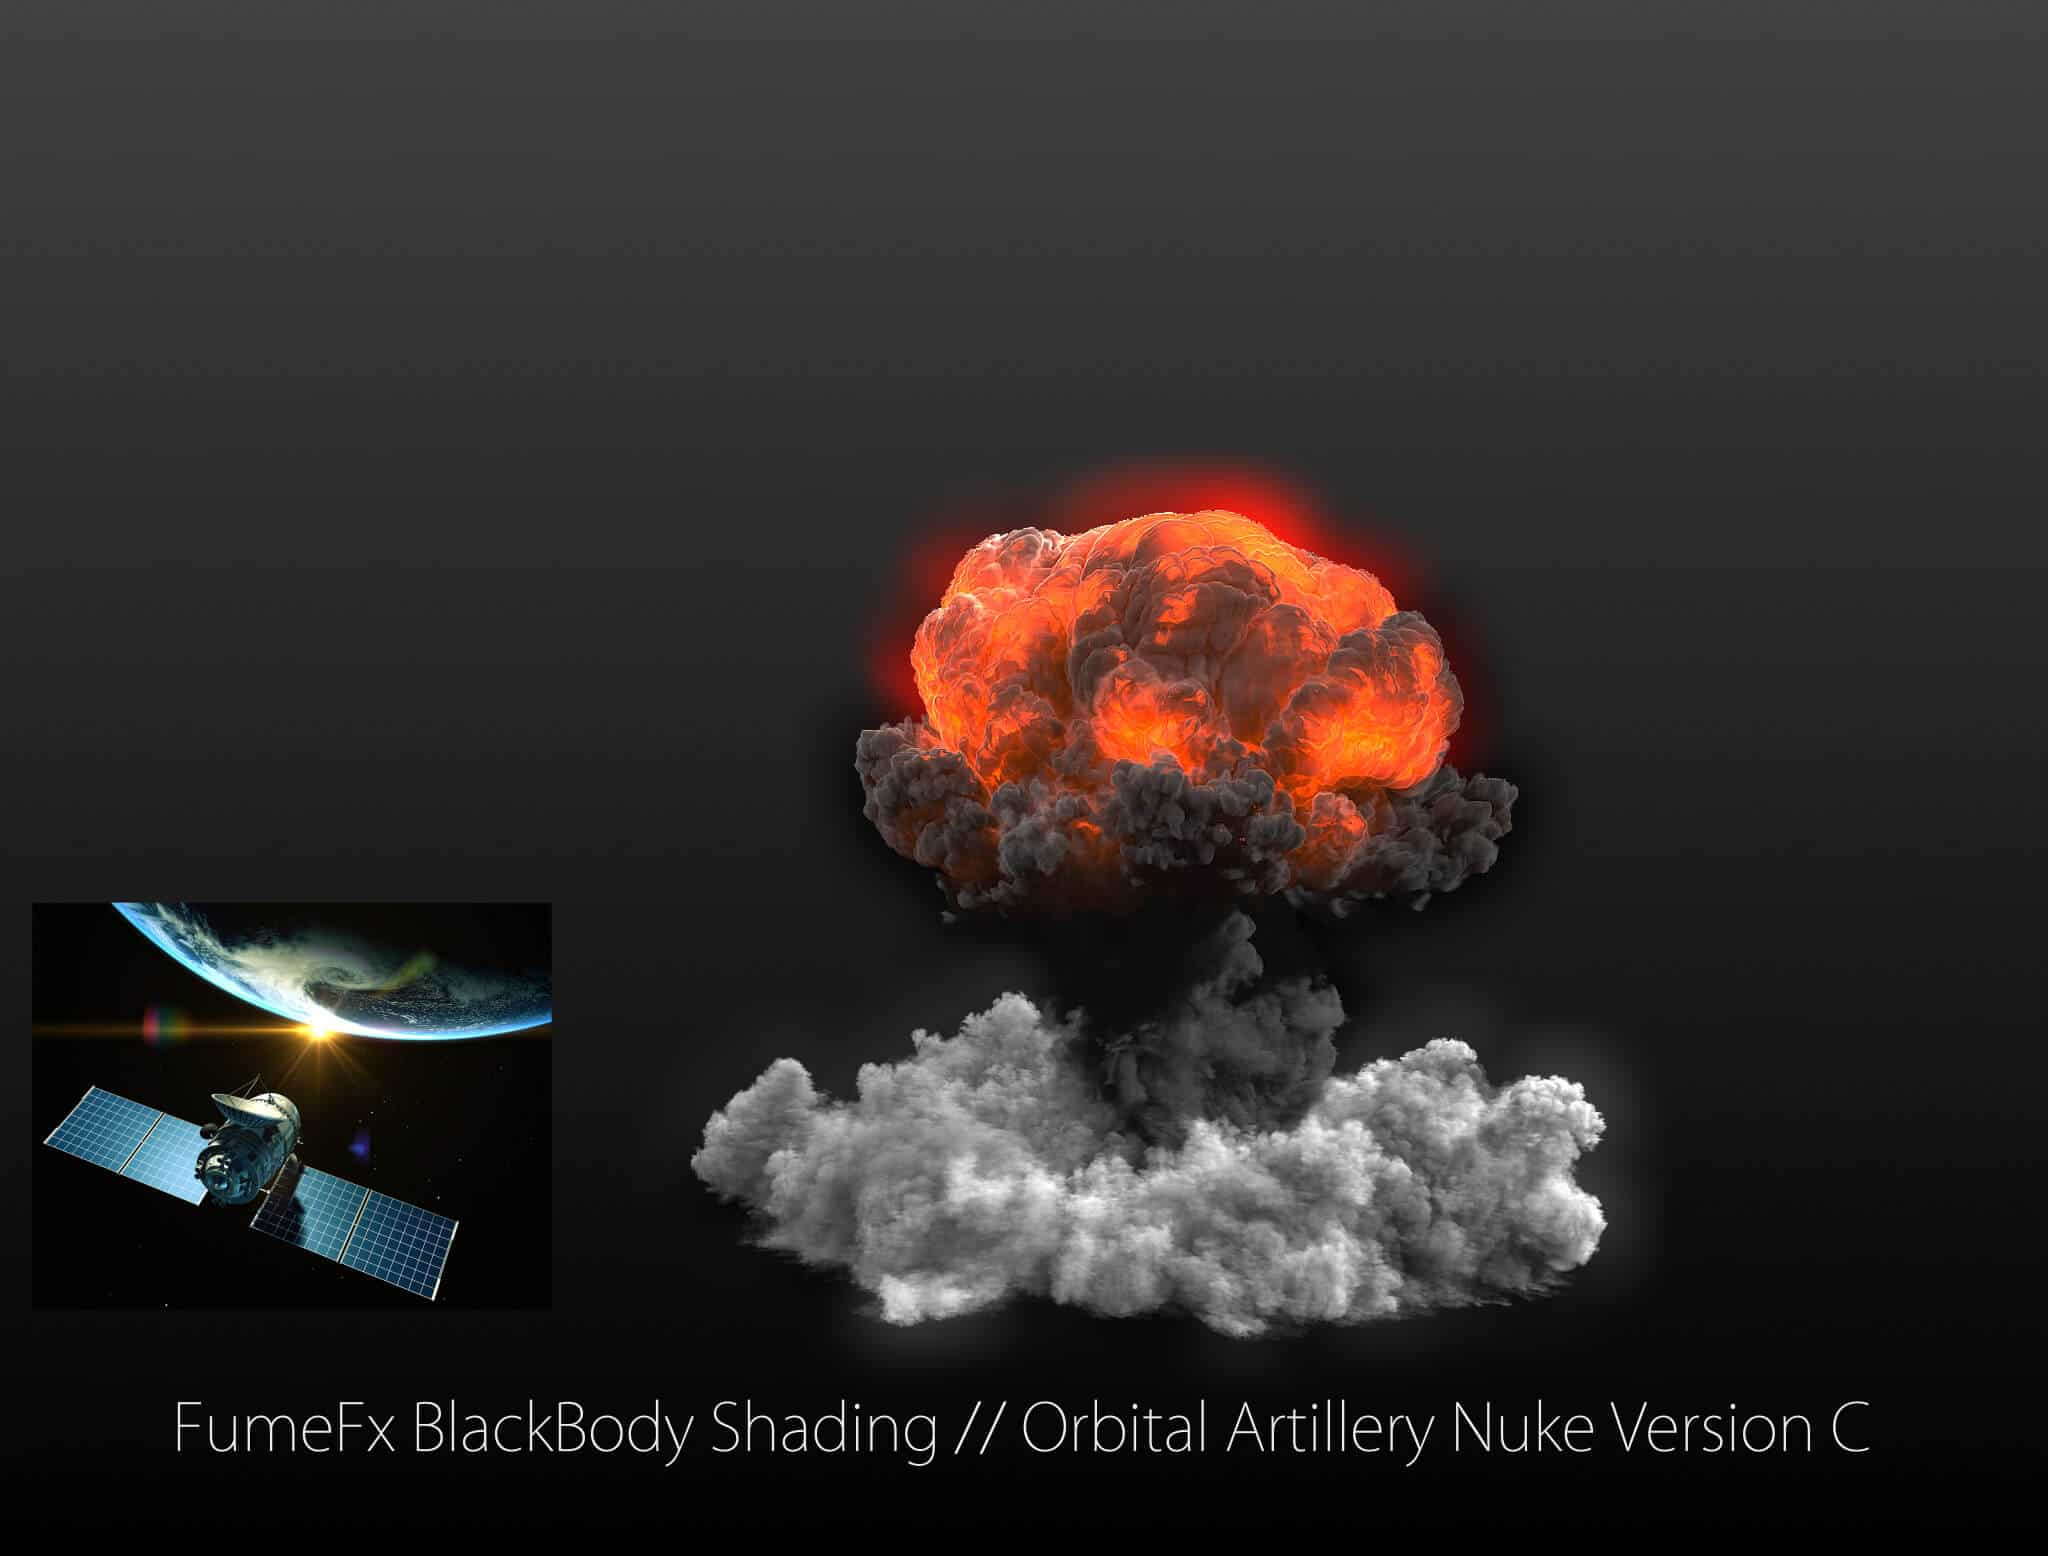 ELECTROMAGNETIC RADIATION FROM A NUCLEAR EXPLOSION IN SPACE